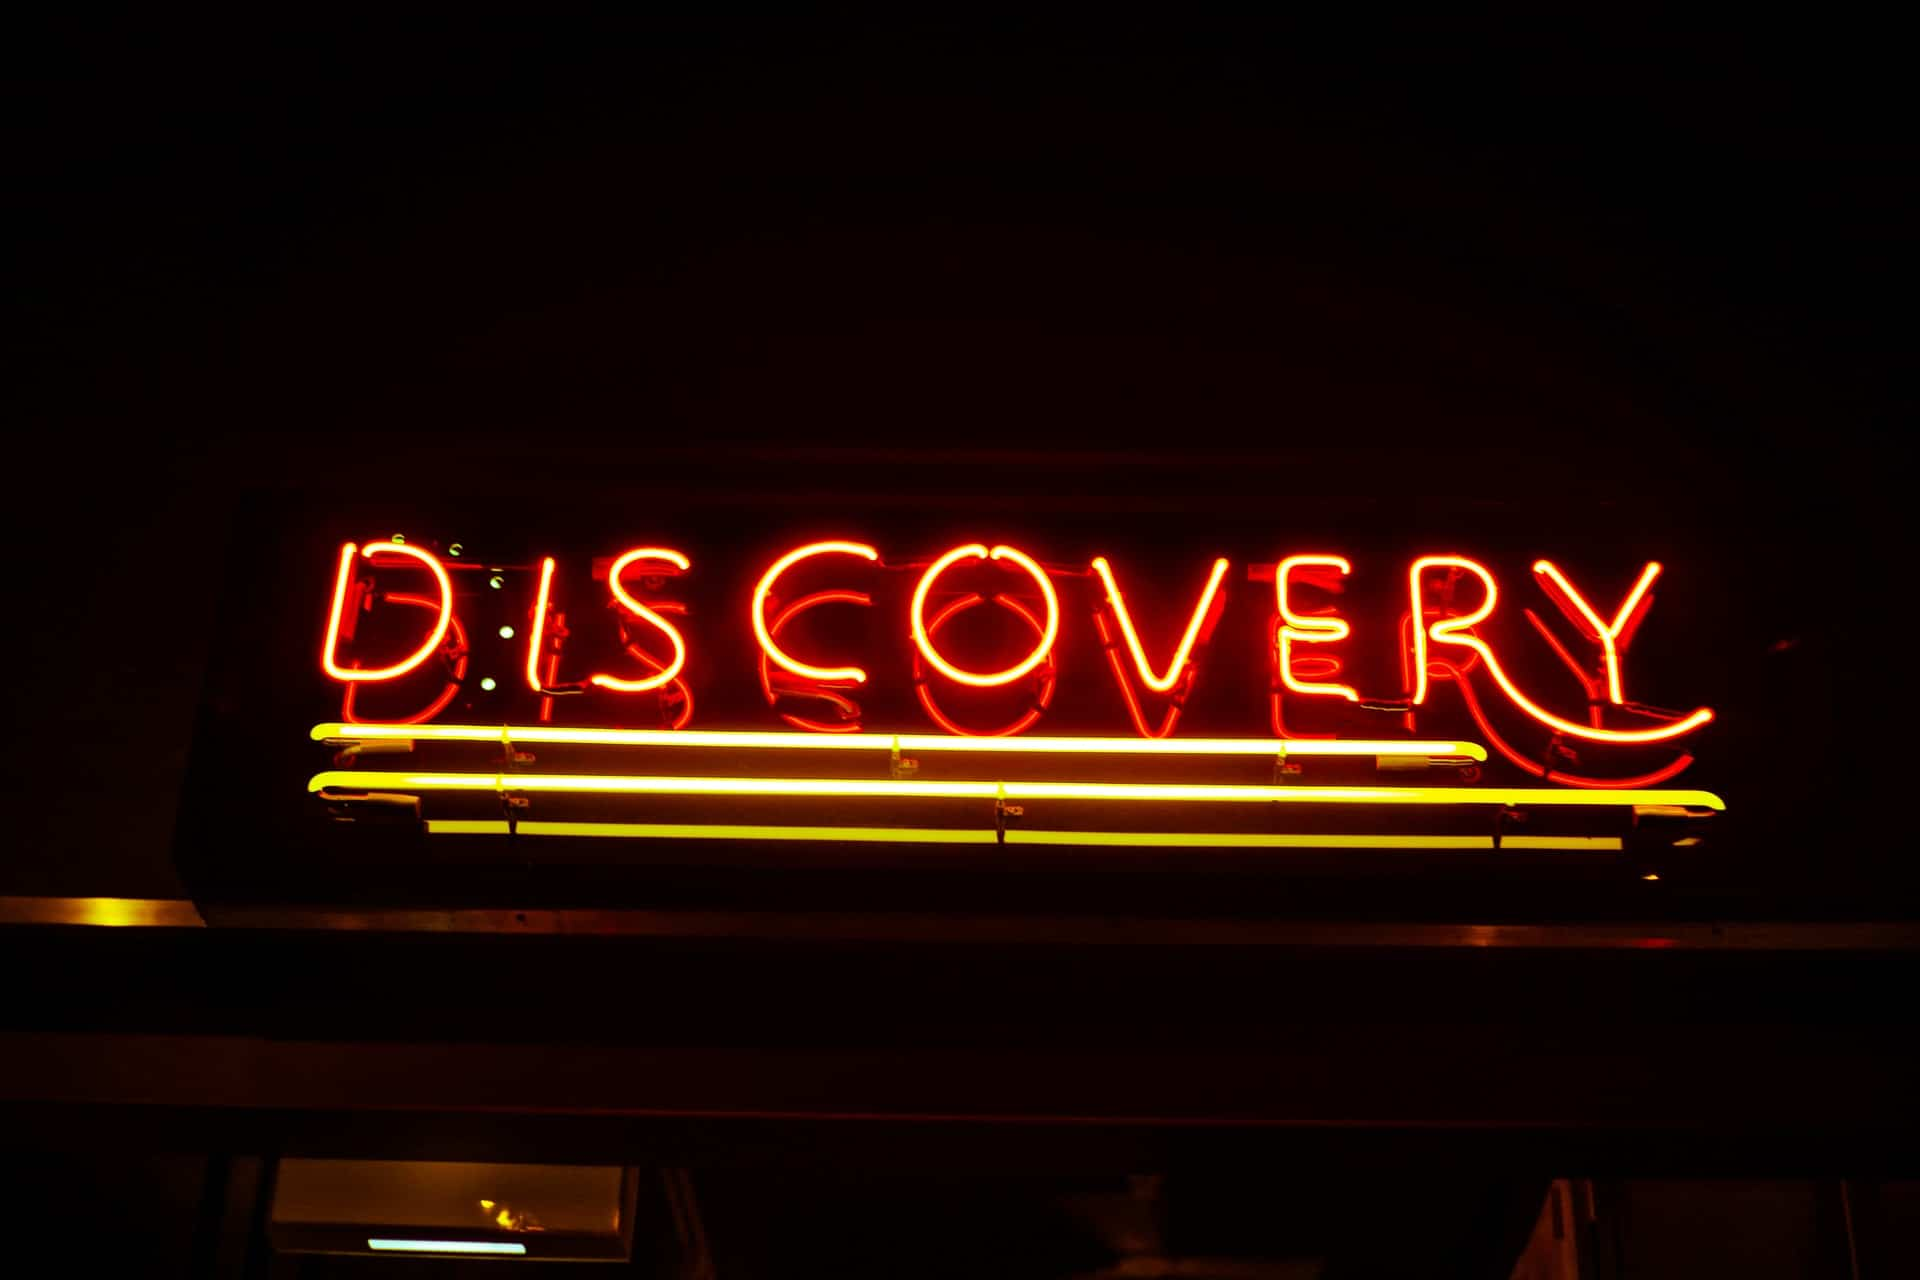 organization discovery service. discovery neon light sign